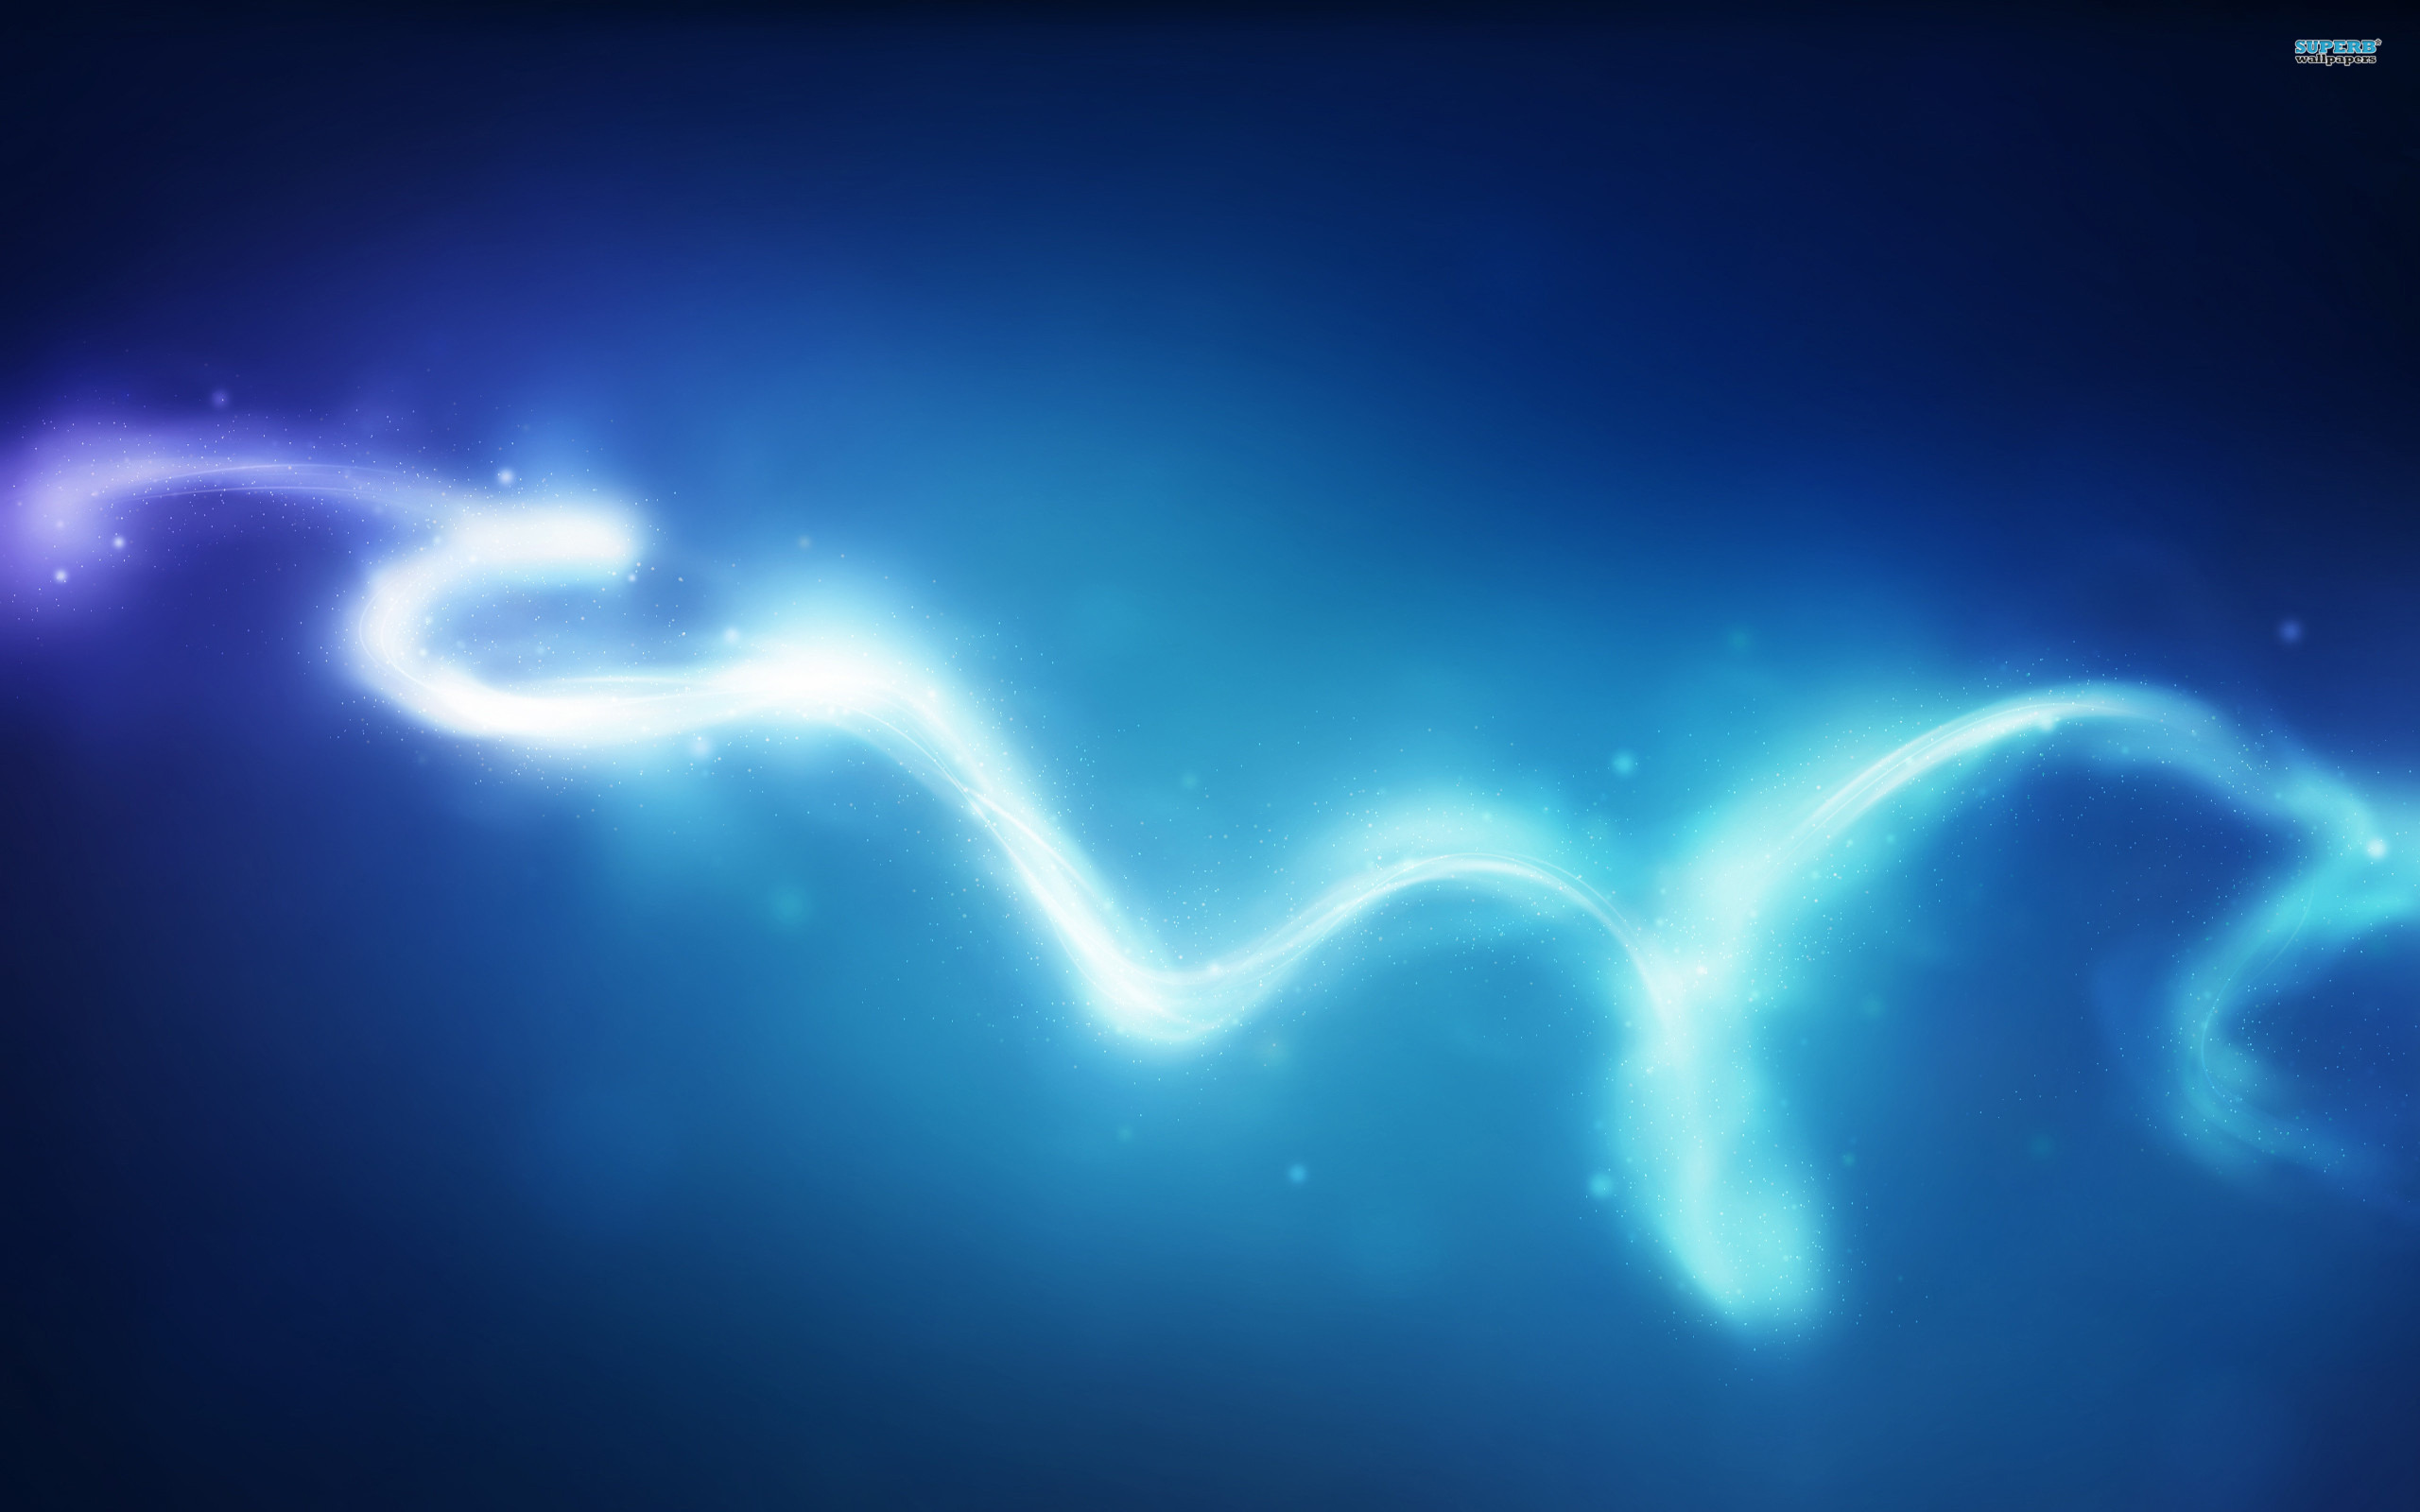 Glowing curve wallpaper 2560x1600